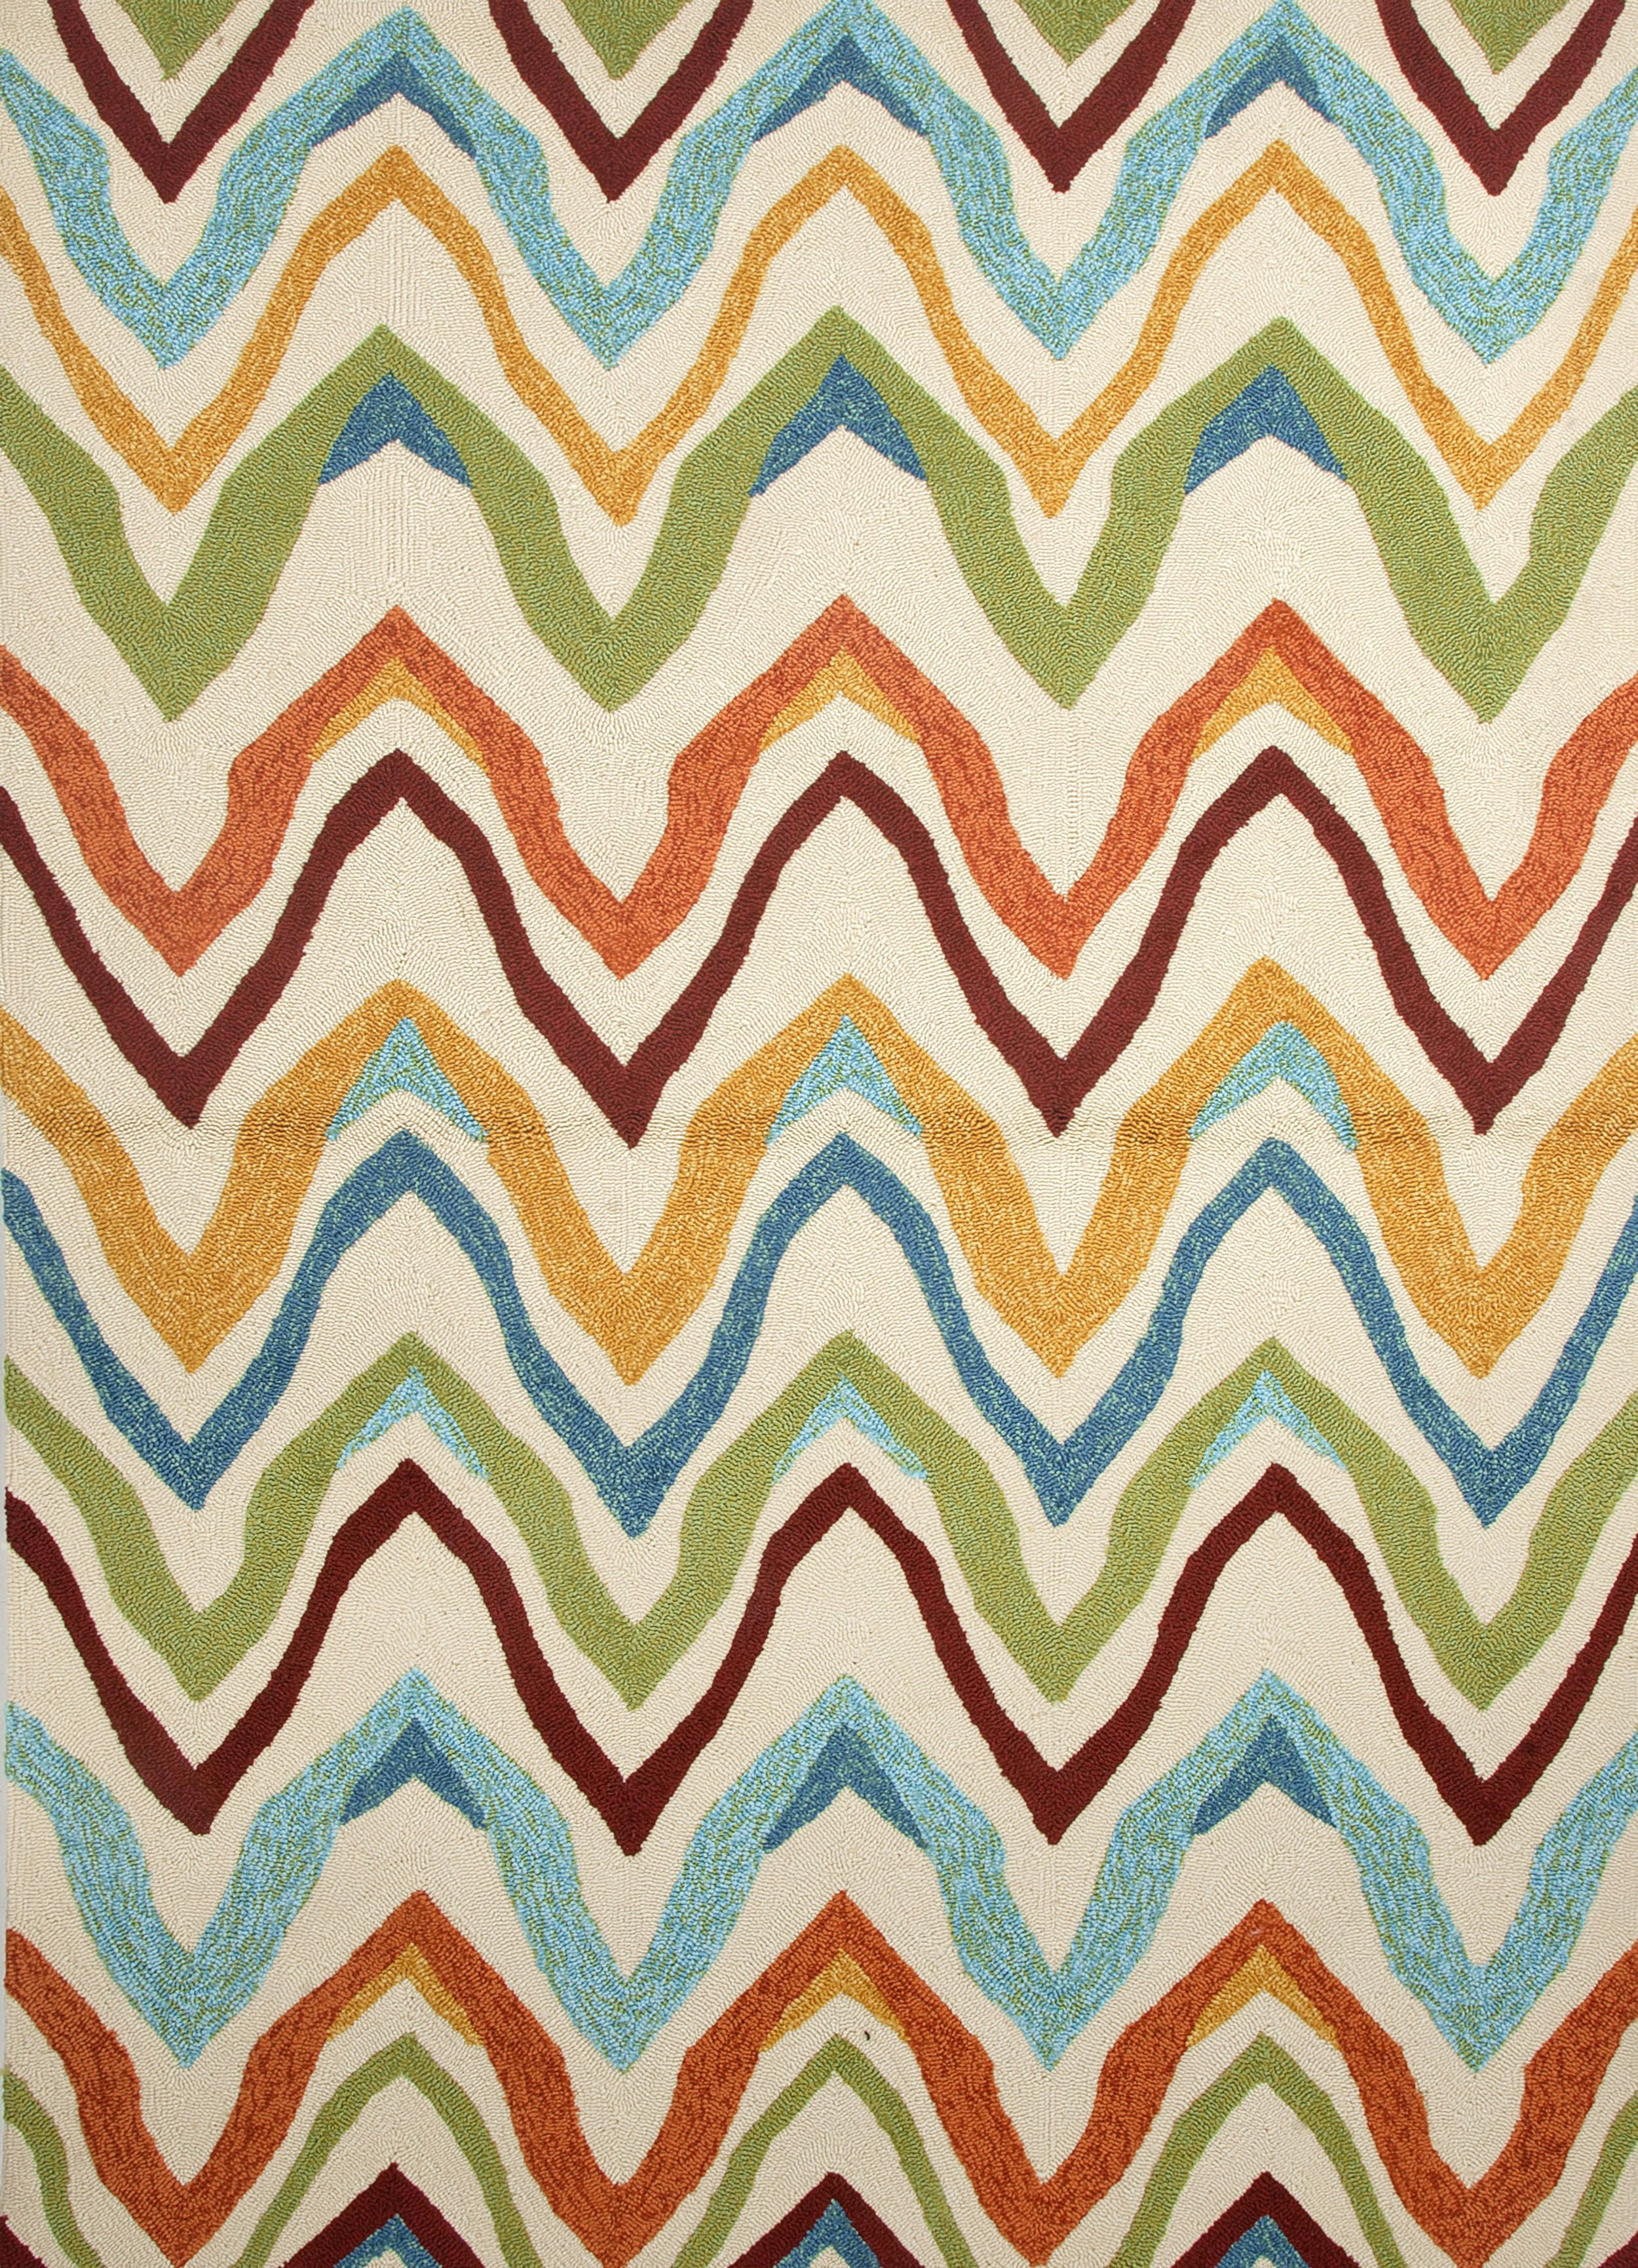 Features Multi Colored Chevron Design Against A Dark Ivory Background Polypropylene